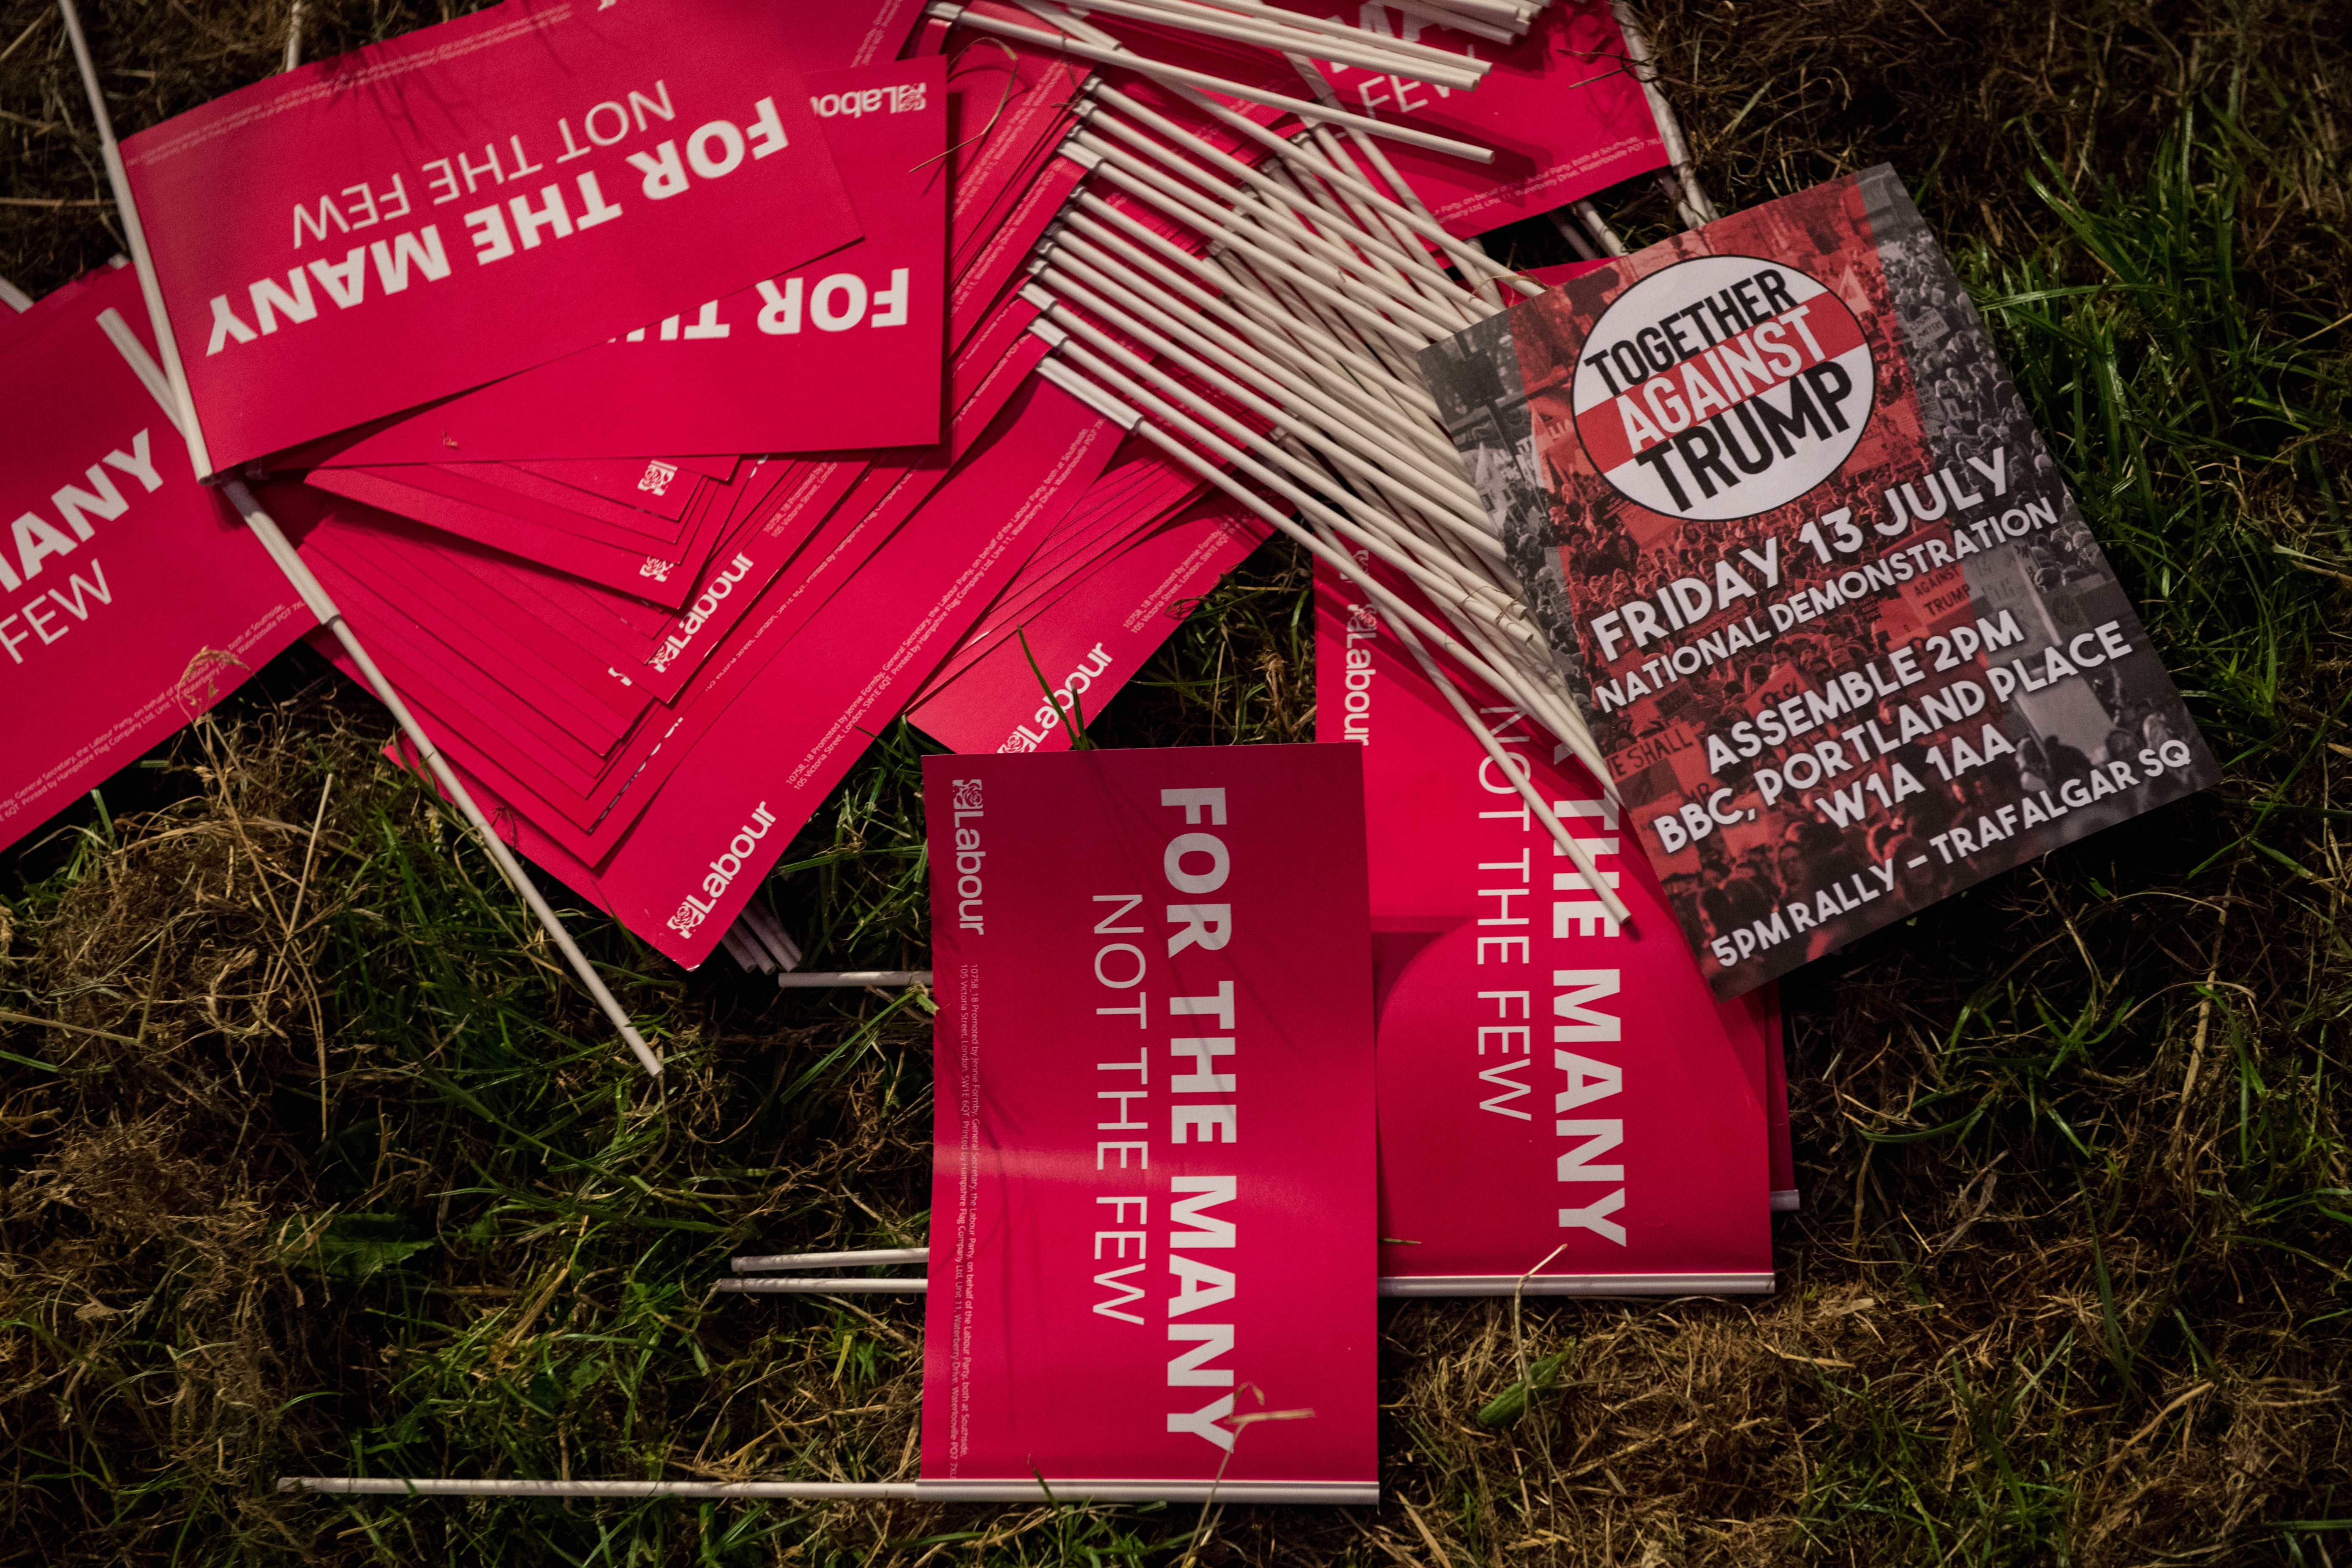 A leaflet for a protest against Donald Trump is seen among Labour party flags at the Solidarity Tent at Labour Live, White Hart Lane, Tottenham on June 16, 2018 in London, England.